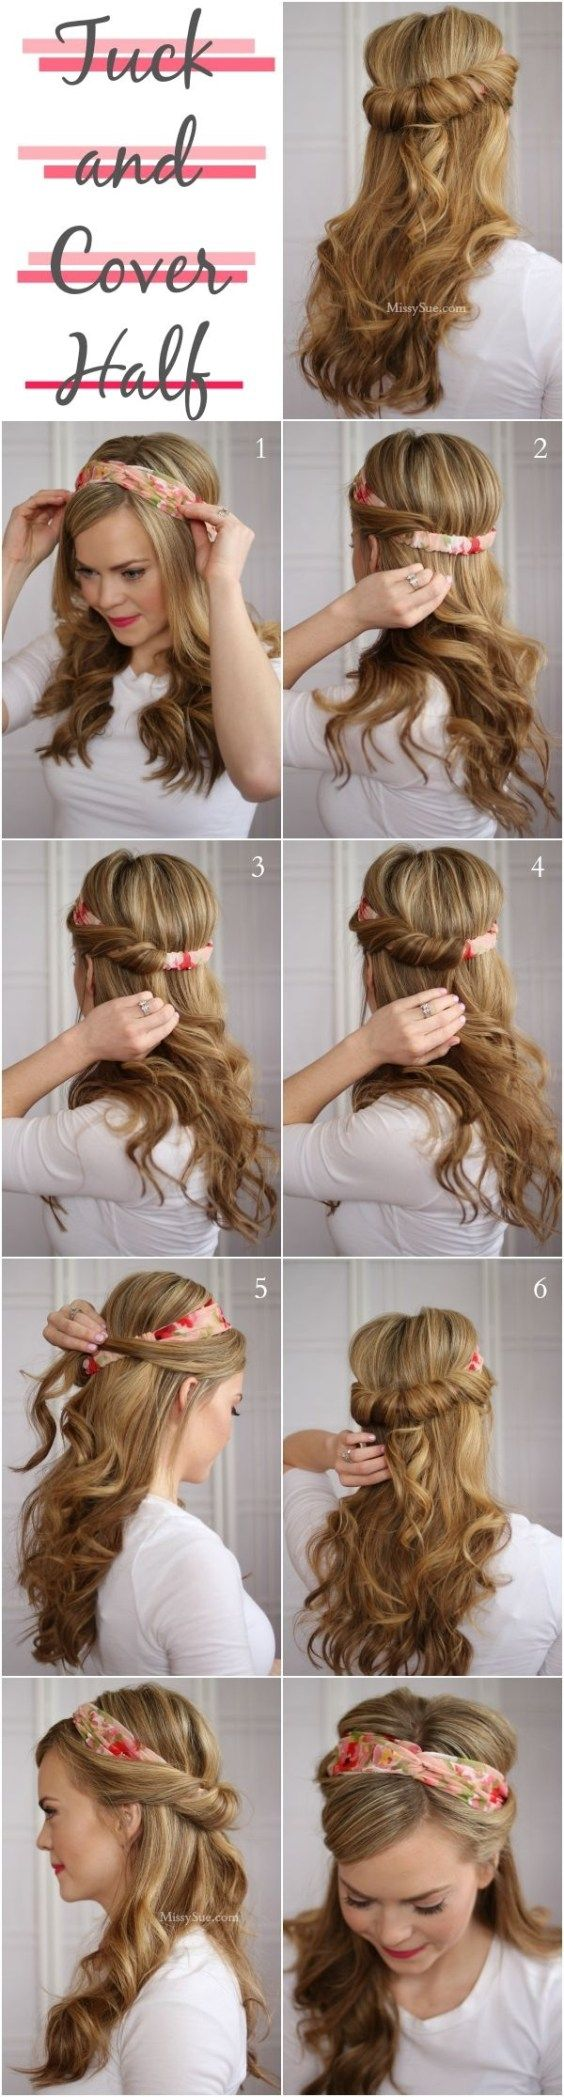 awesome lists for hair care tips lazy girl hair style and